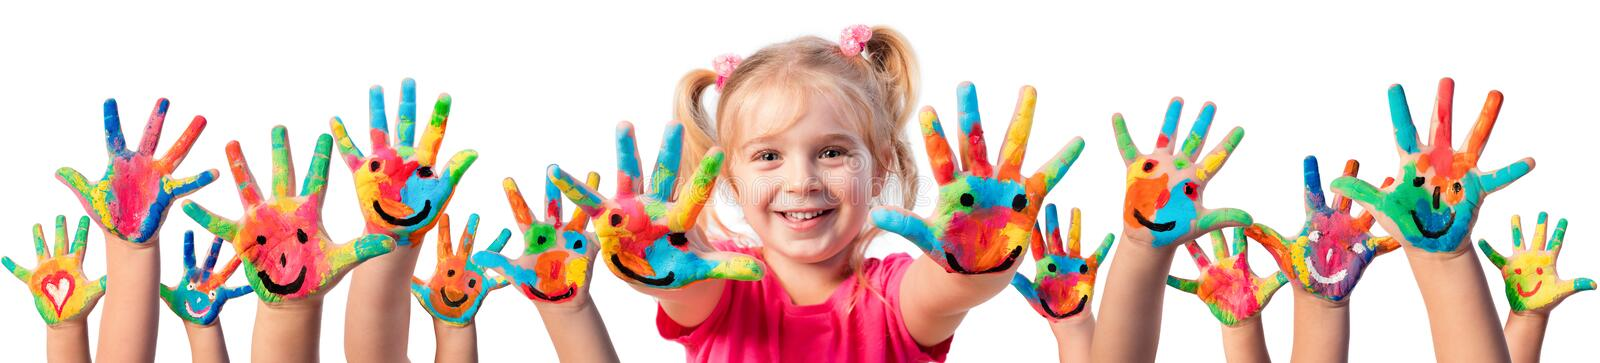 Children In Creativity - Hands Painted stock image